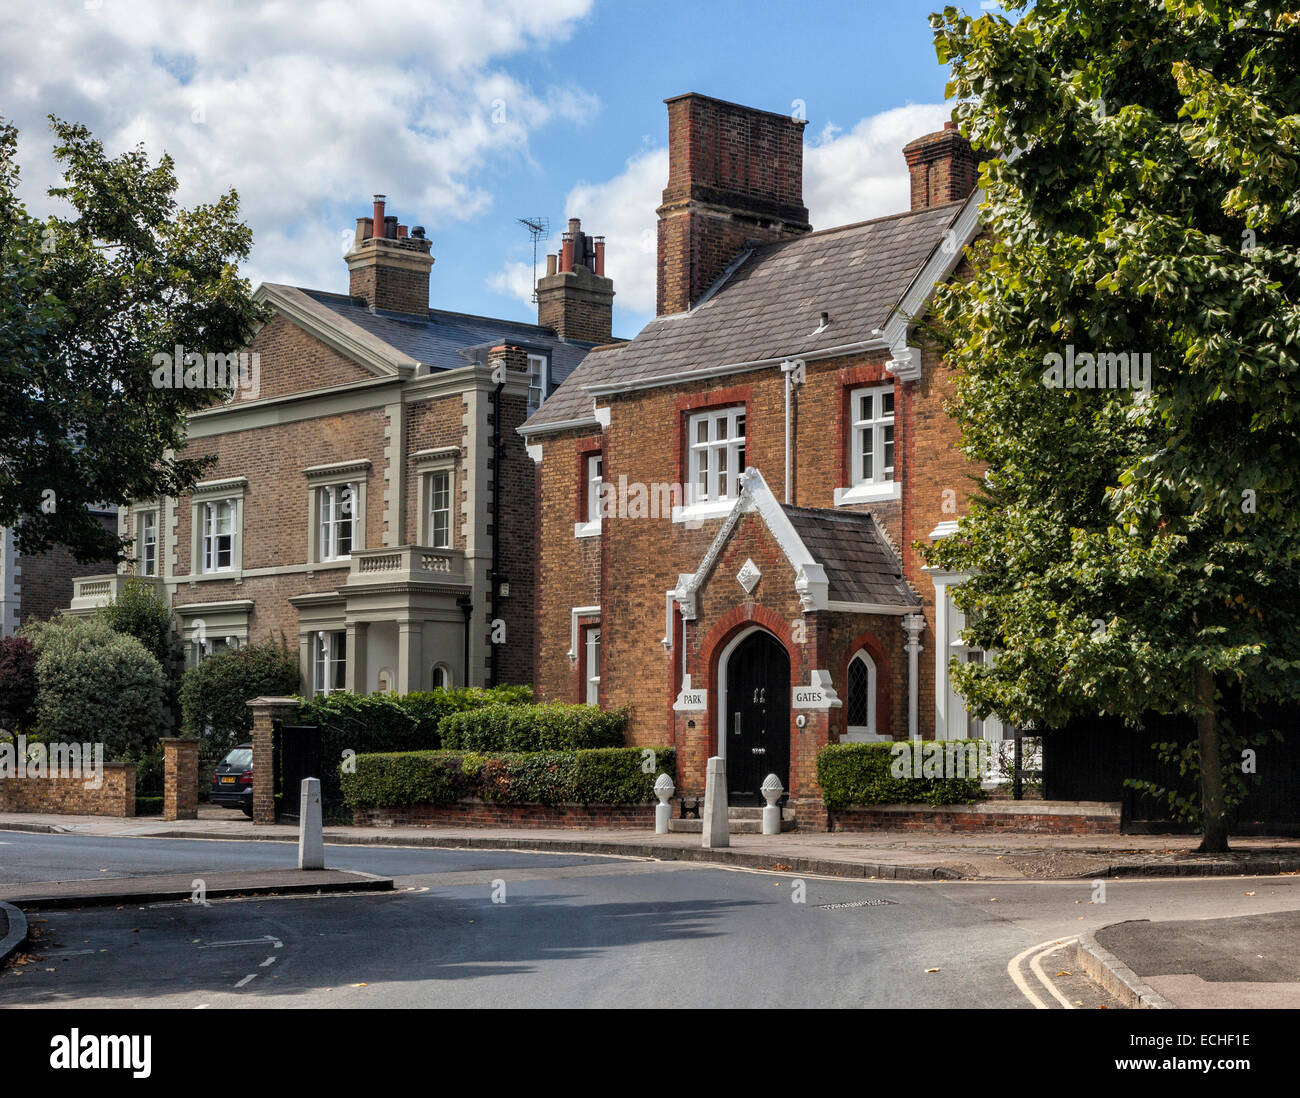 Luxury Brick Homes: Luxury Traditional Brick Houses On The Richmond Green